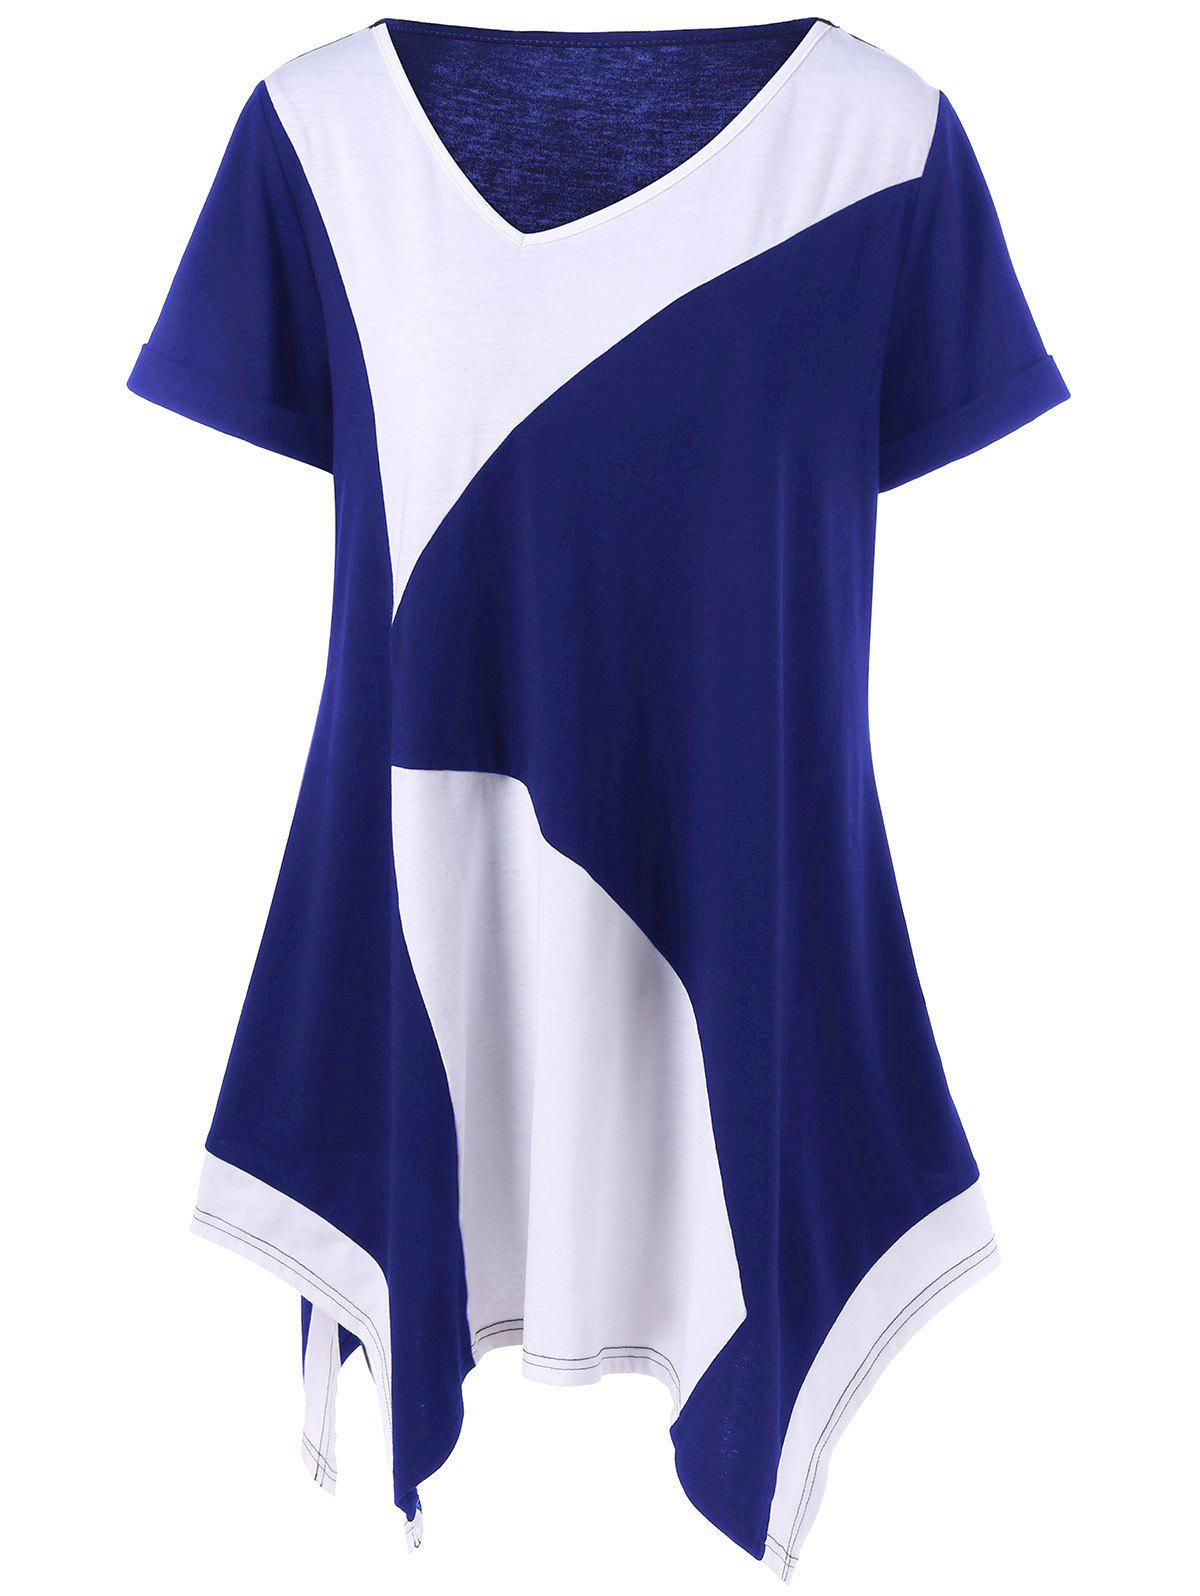 Plus Size Long Cuffed Sleeve Asymmetrical T-ShirtWOMEN<br><br>Size: 2XL; Color: BLUE AND WHITE; Material: Polyester,Spandex; Shirt Length: Long; Sleeve Length: Short; Collar: V-Neck; Style: Casual; Season: Summer; Pattern Type: Others; Weight: 0.3500kg; Package Contents: 1 x T-Shirt;